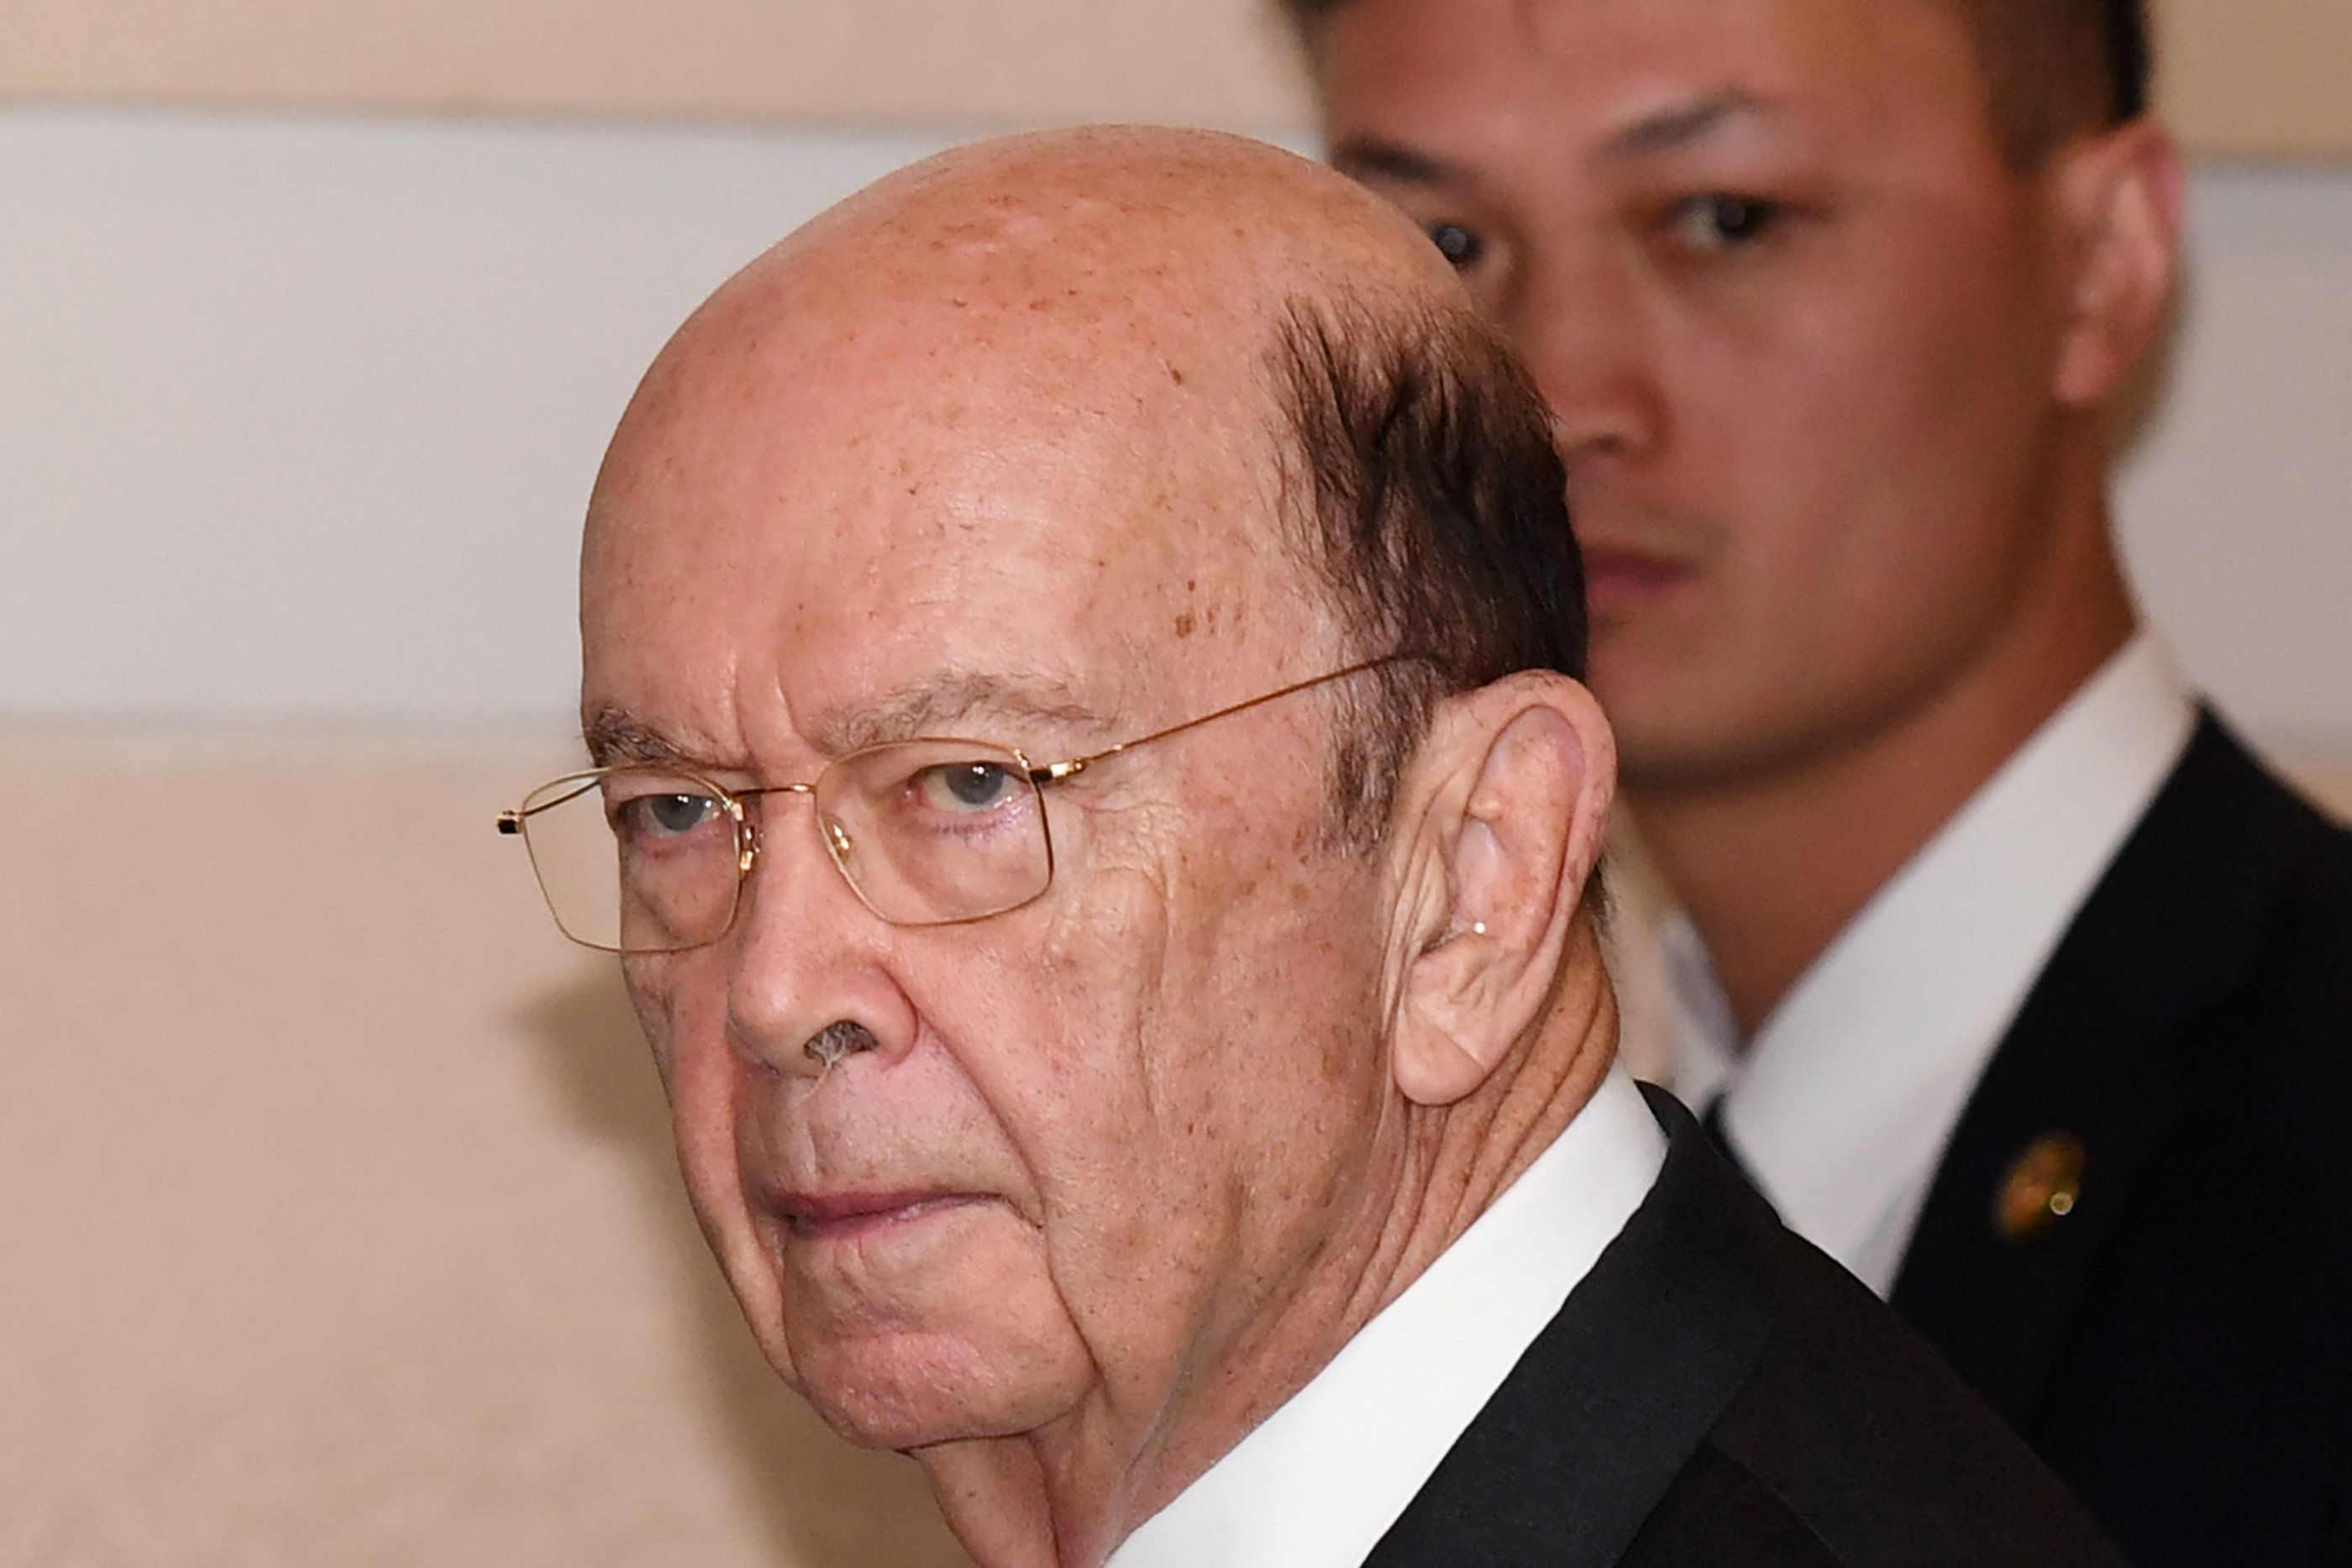 US Commerce Secretary Wilbur Ross leaves a hotel in Beijing on June 2, 2018. - US Commerce Secretary Wilbur Ross arrived in Beijing on June 2 for talks aiming to ease tensions over tariffs that have heightened fears of a trade war between the world's two biggest economies, Chinese state media said. (Photo by Greg Baker / AFP)        (Photo credit should read GREG BAKER/AFP/Getty Images)